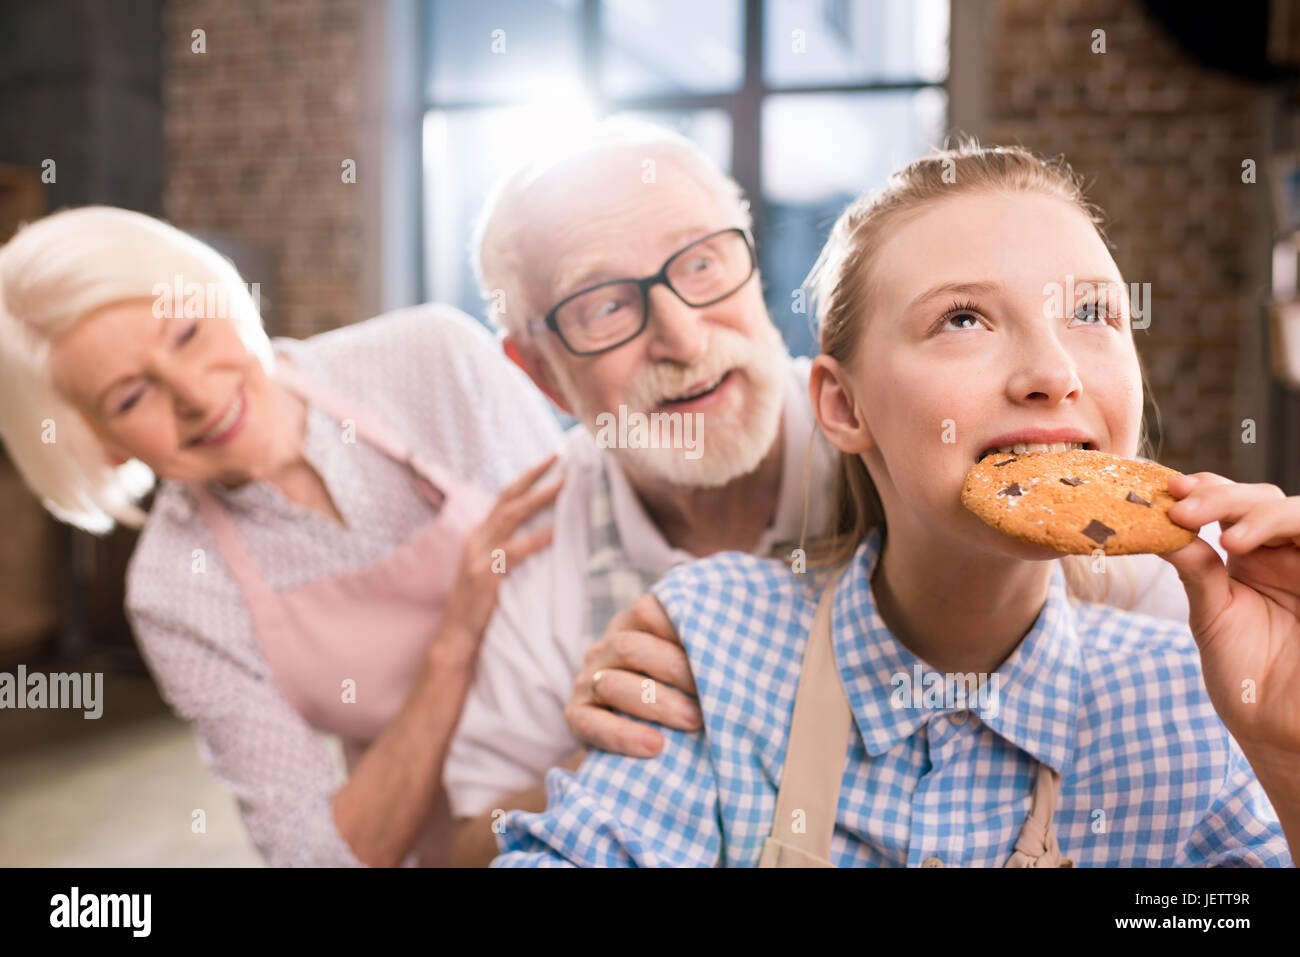 girl eating homemade cookie with grandparents behind - Stock Image